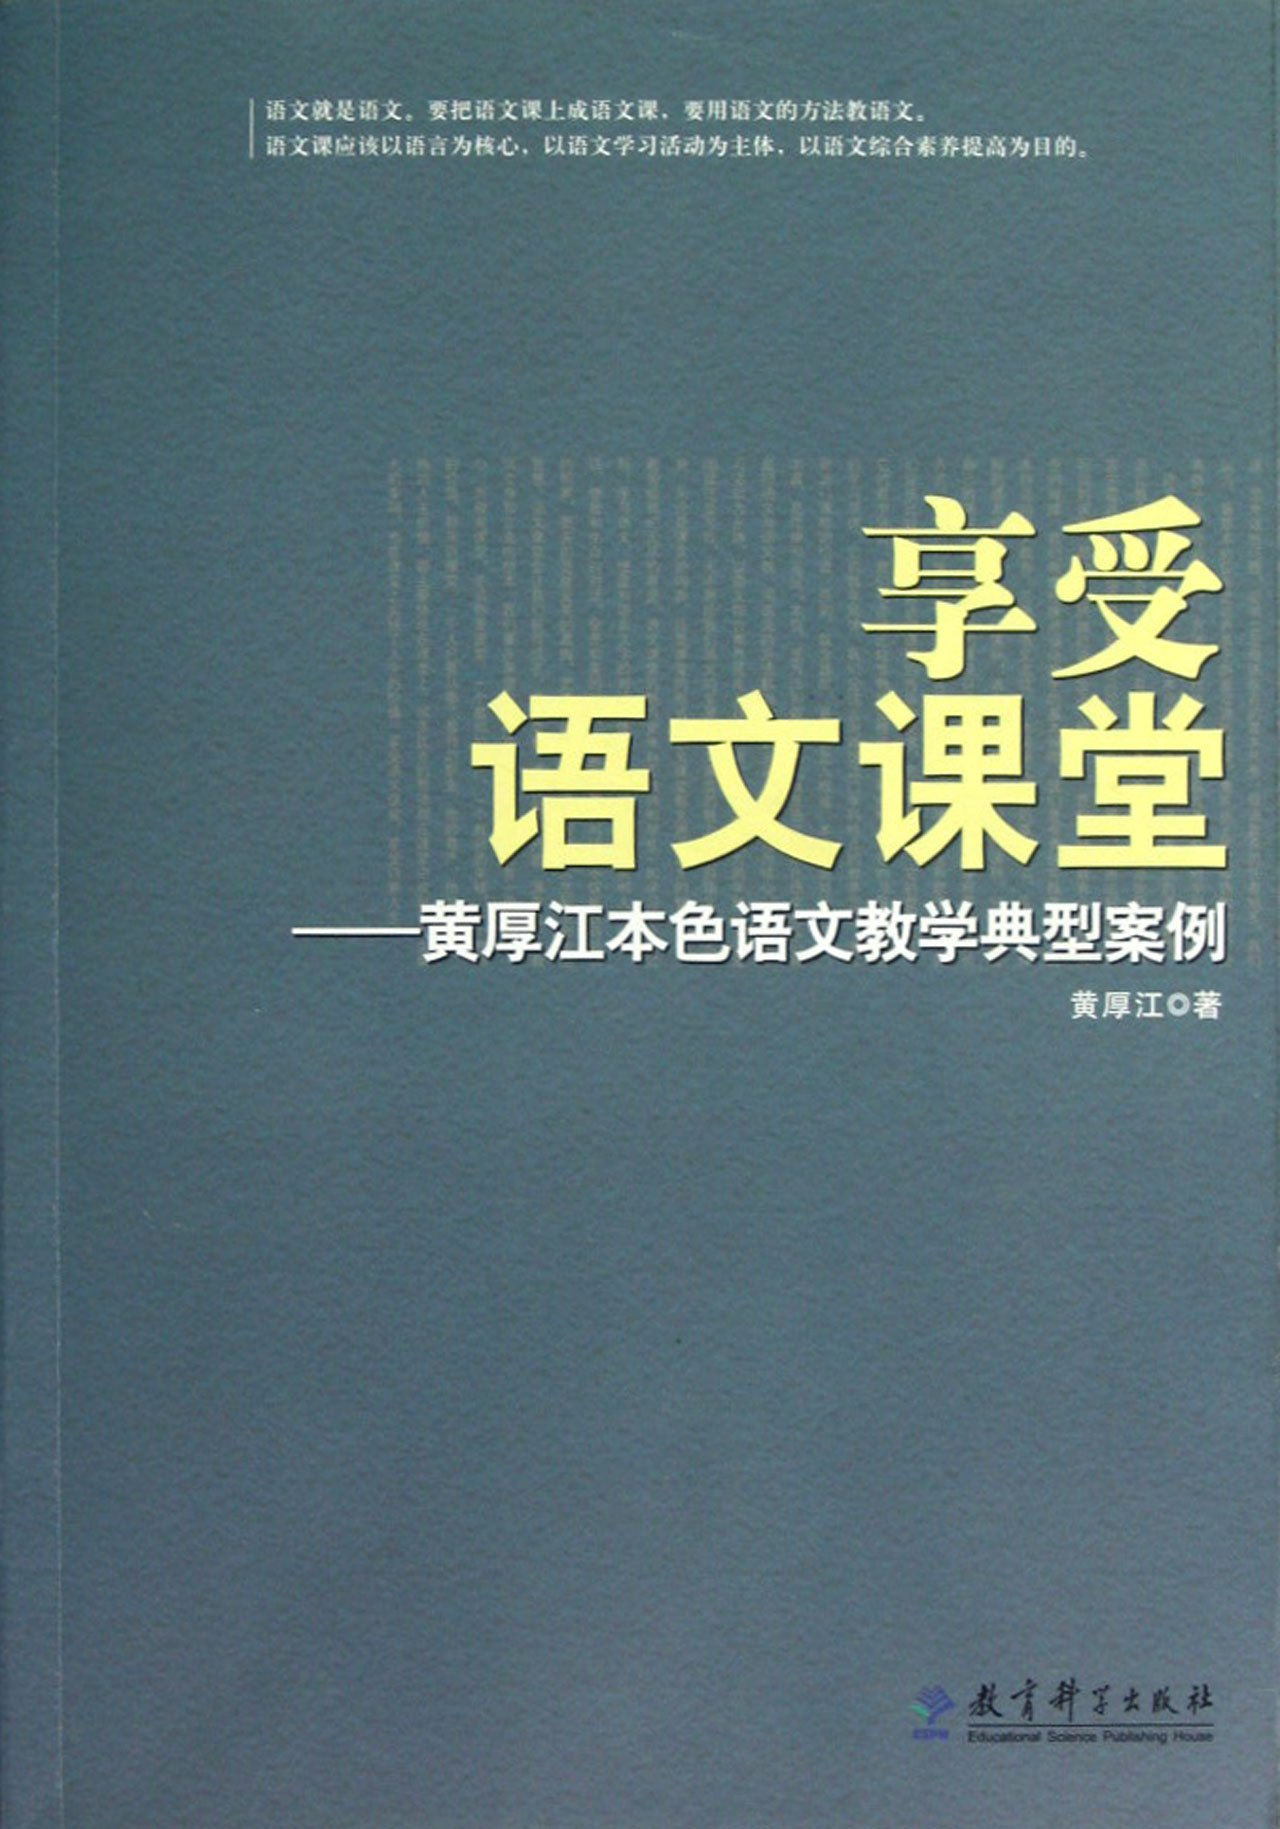 Download Enjoy Chinese Class (Chinese Edition) pdf